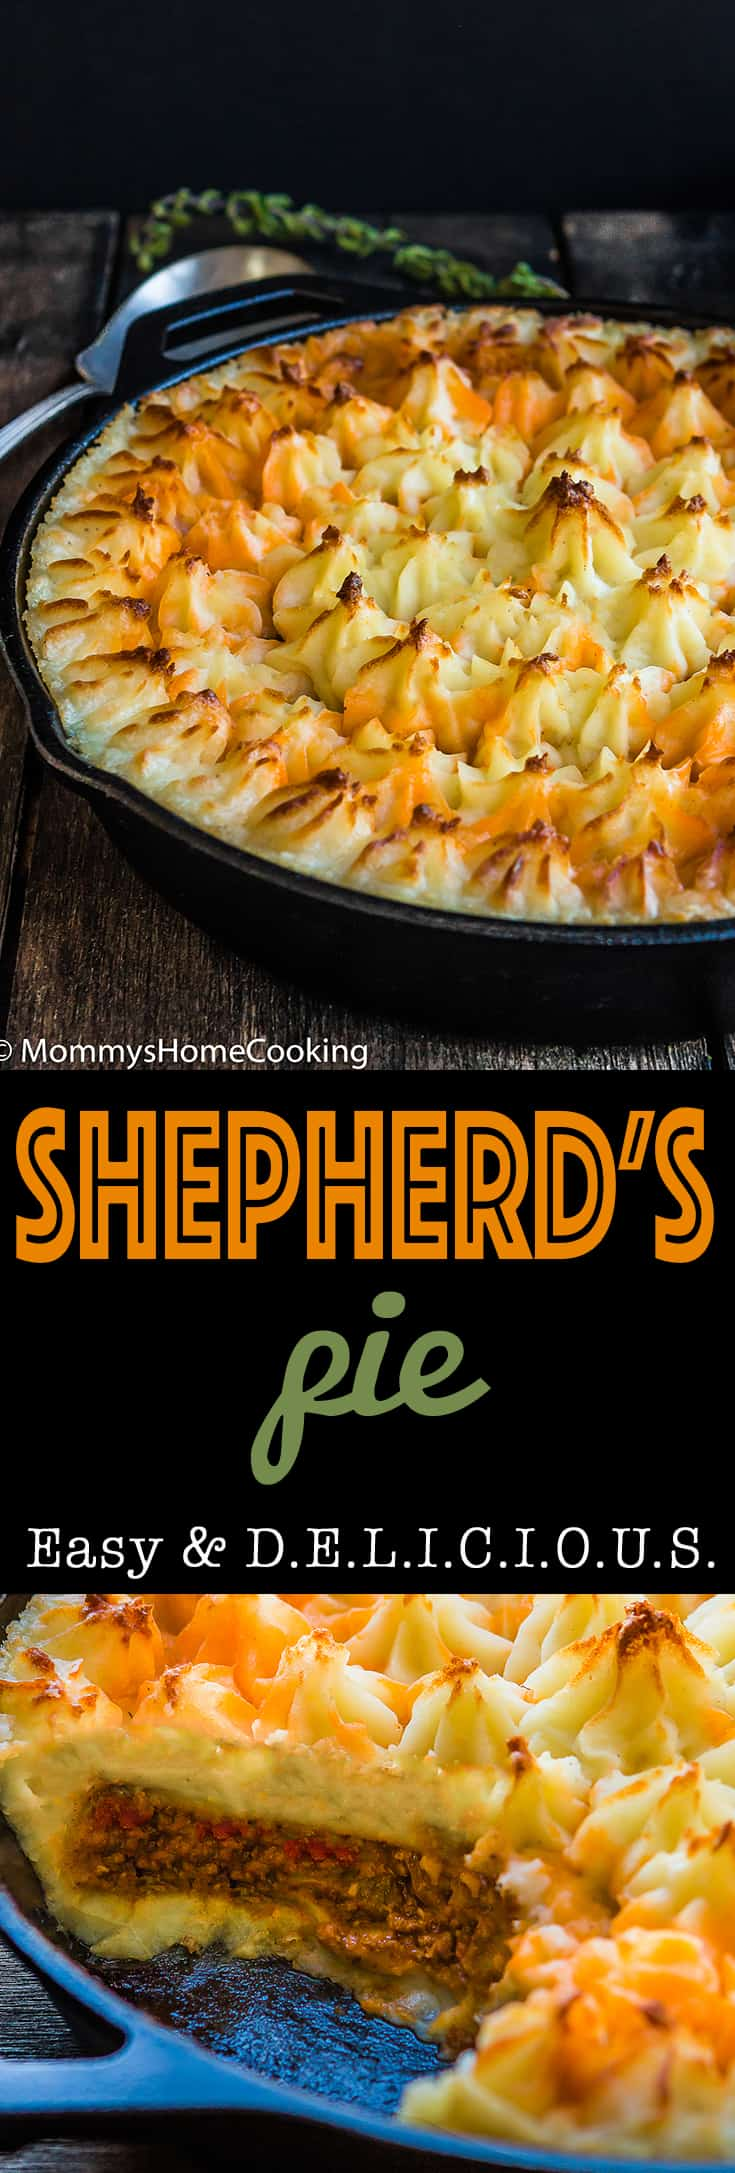 Shepherd's Pieis a complete, comforting, and scrumptious meal full of flavor! Made from scratch with Parmesan mashed potatoes and baked to perfection. https://mommyshomecooking.com